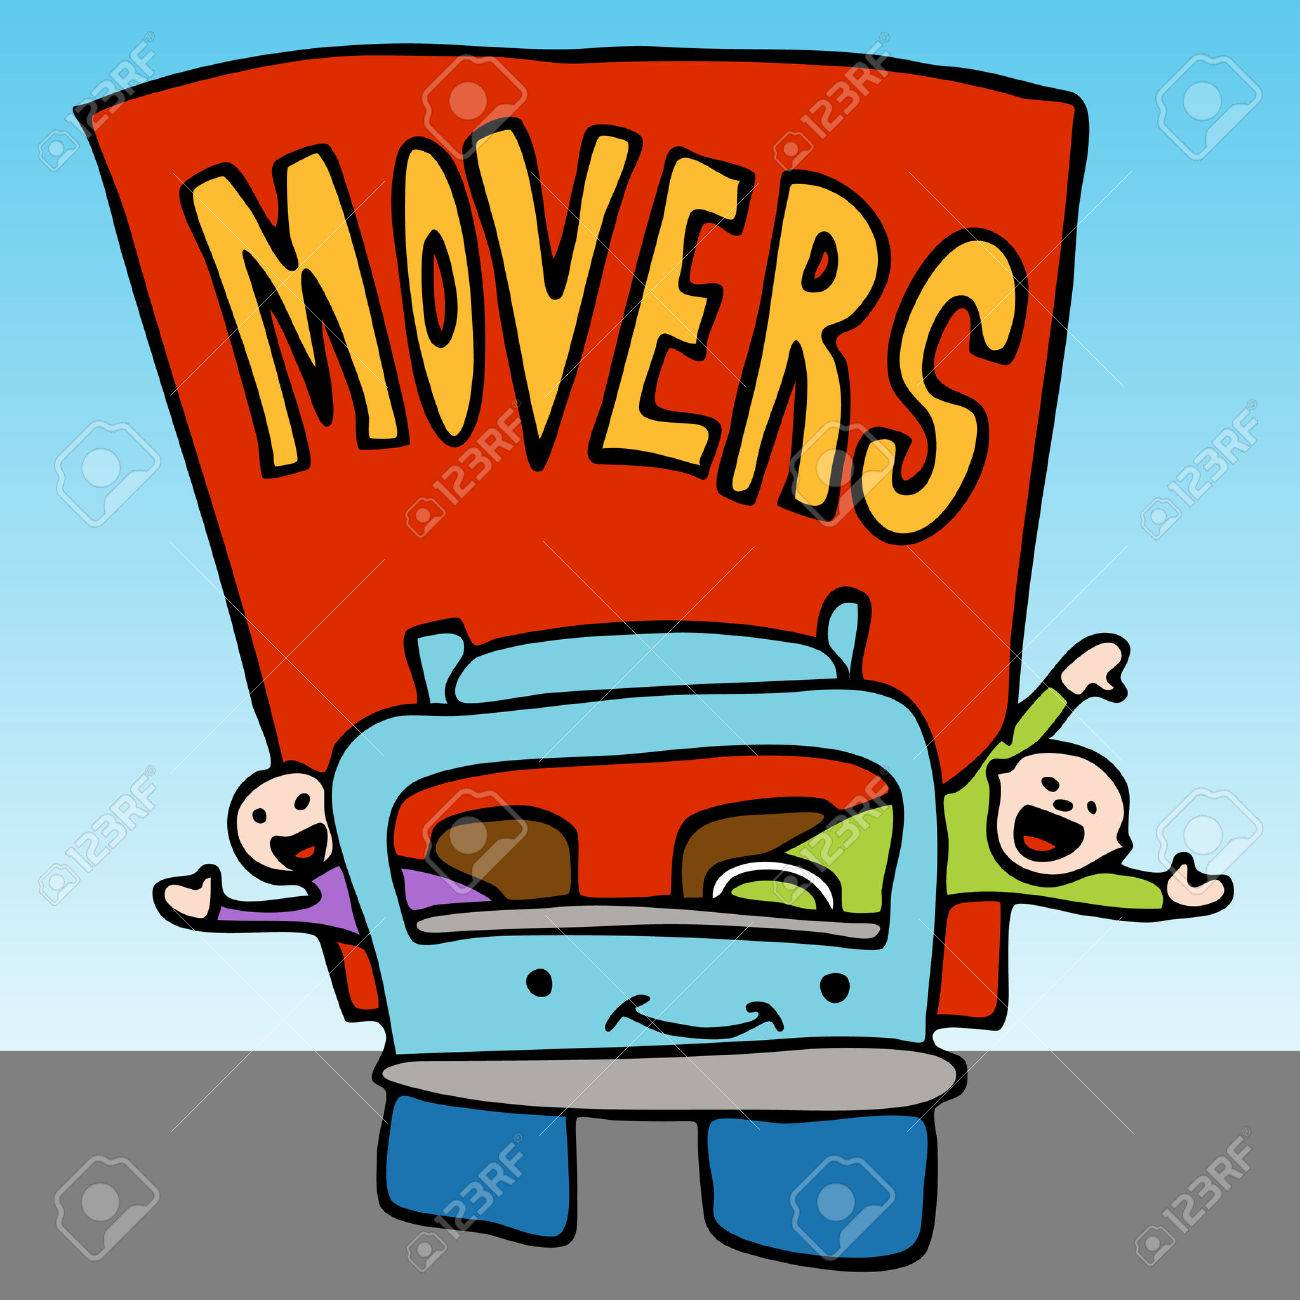 Image result for movers cartoon image